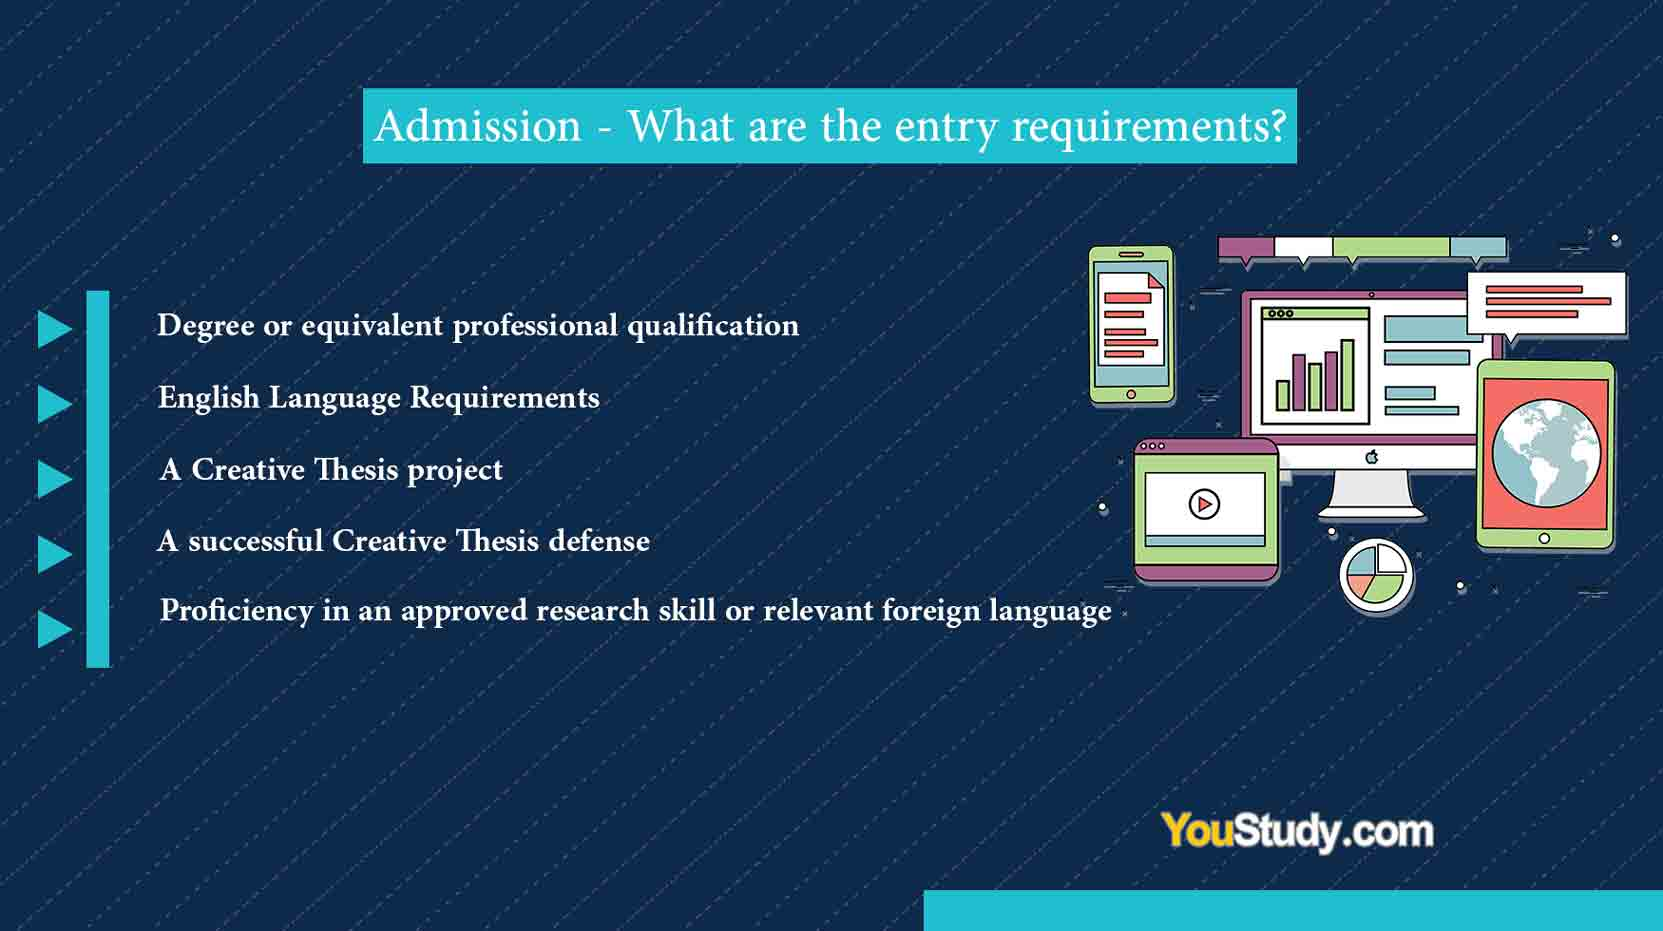 Admission - What are the entry requirements